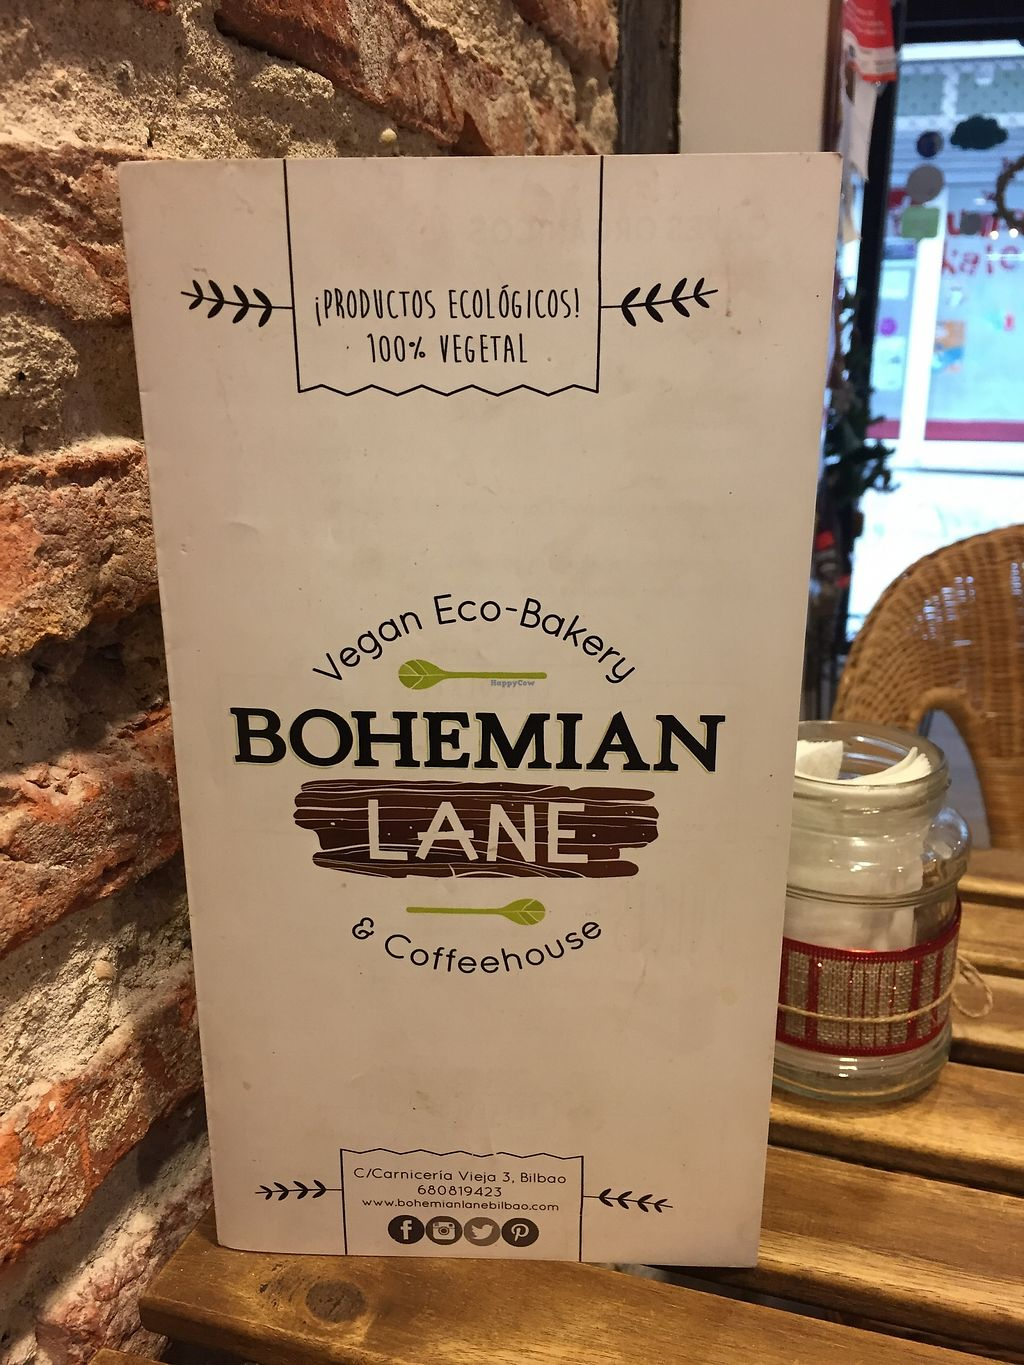 """Photo of Bohemian Lane  by <a href=""""/members/profile/StevieSurf"""">StevieSurf</a> <br/>Cafe details  <br/> December 24, 2017  - <a href='/contact/abuse/image/54543/338640'>Report</a>"""